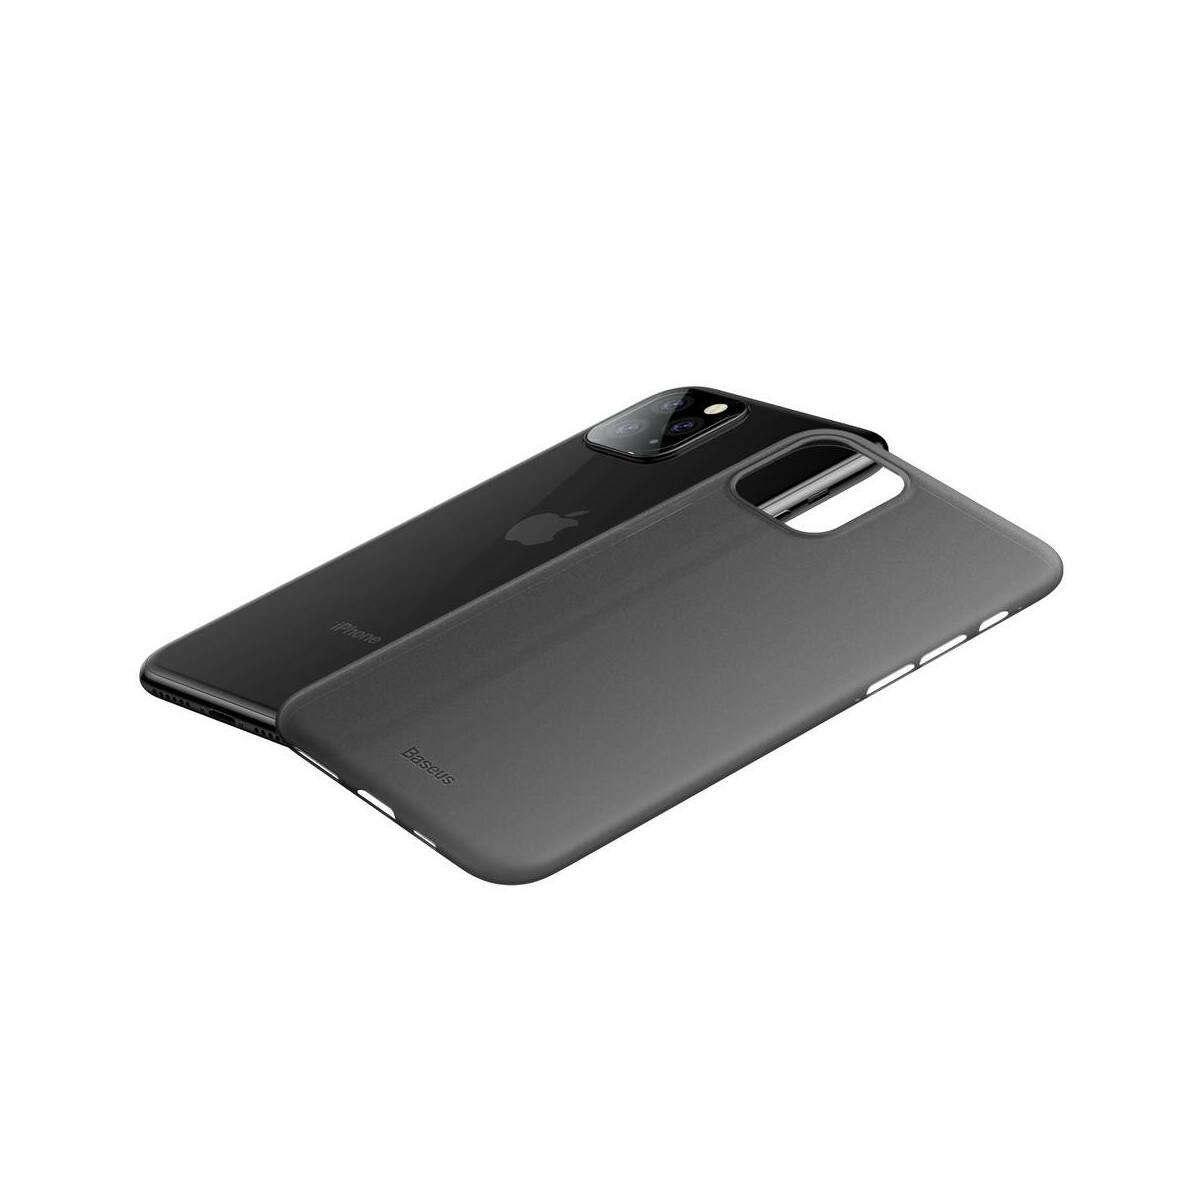 Baseus iPhone 11 Pro Max tok, Wing, fekete (WIAPIPH65S-01)